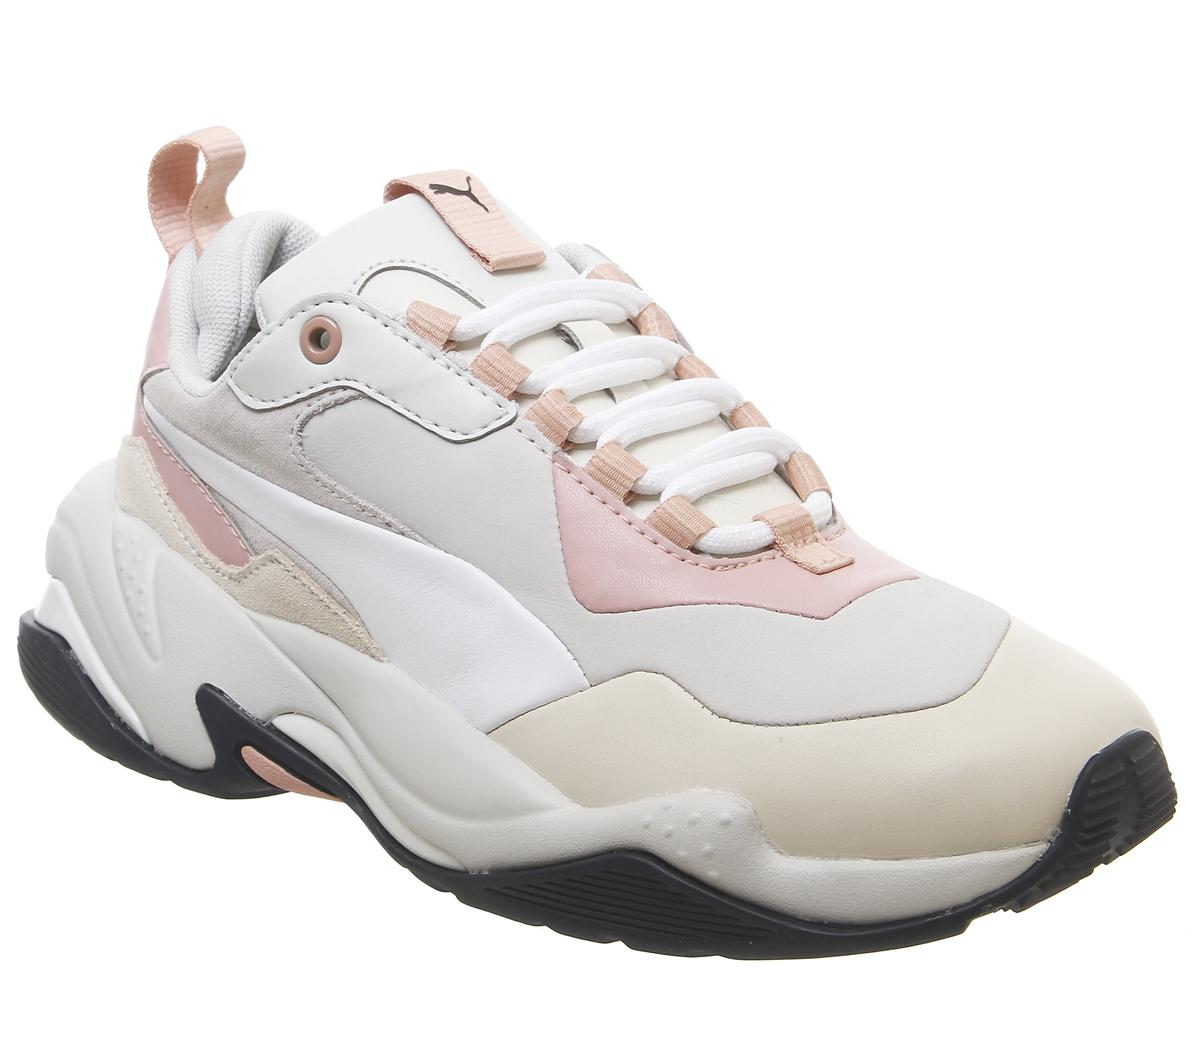 Thunder Rive Guache Trainers